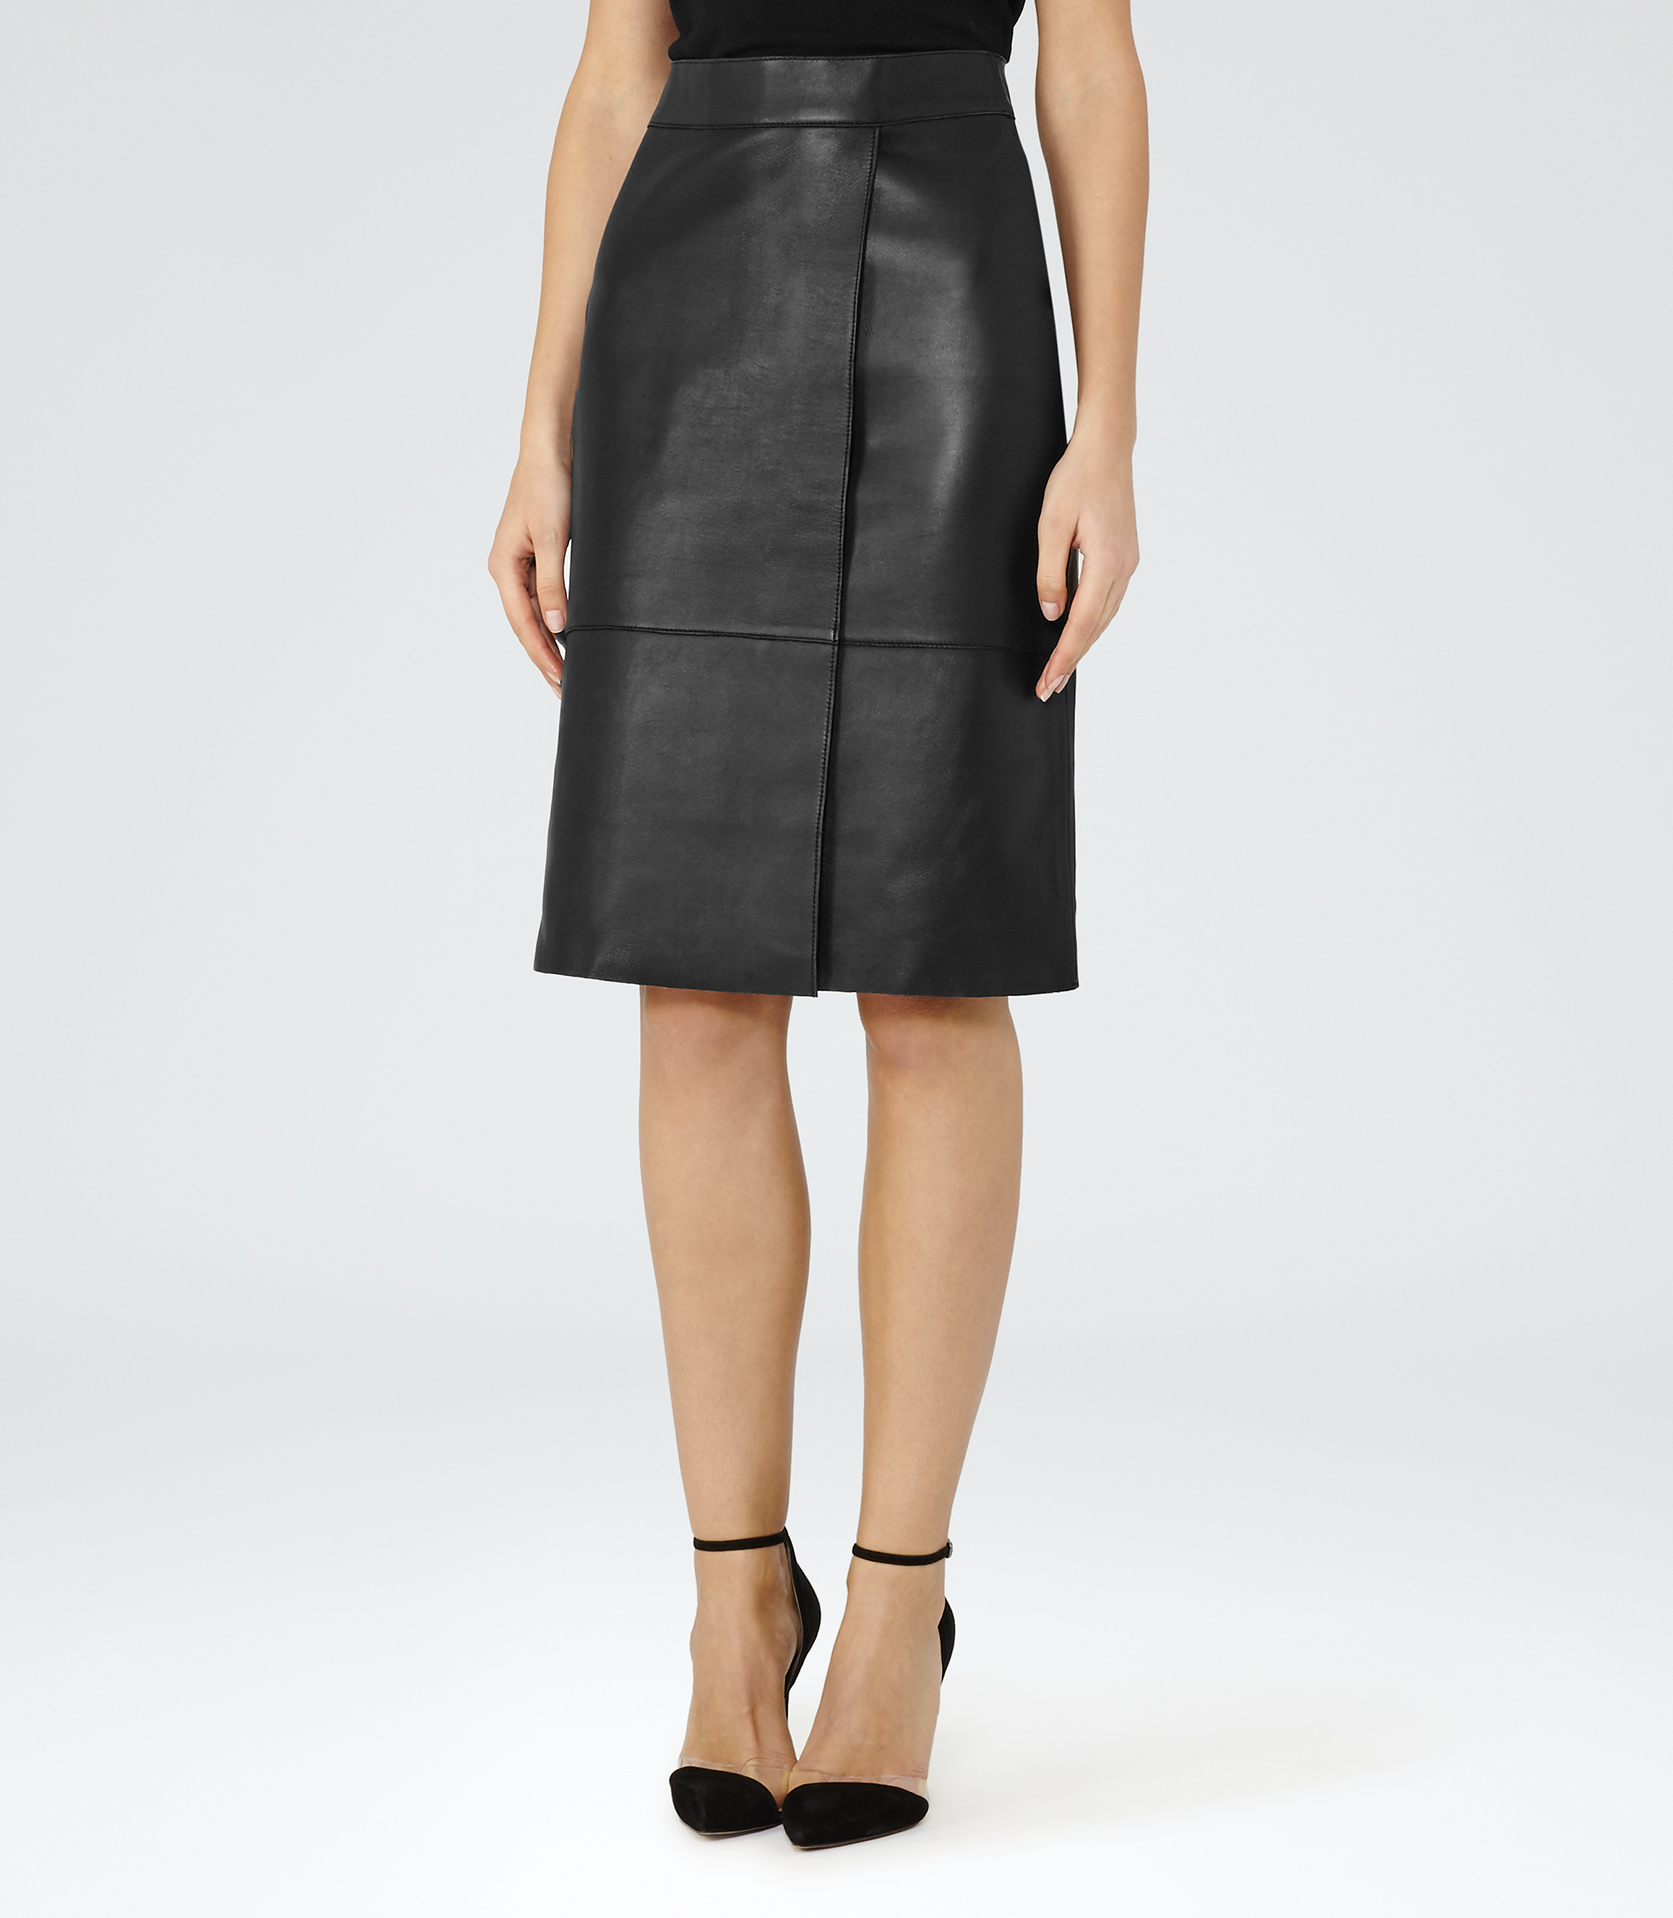 a8abe79bde Reiss Feather Bonded Leather Skirt in Black - Lyst